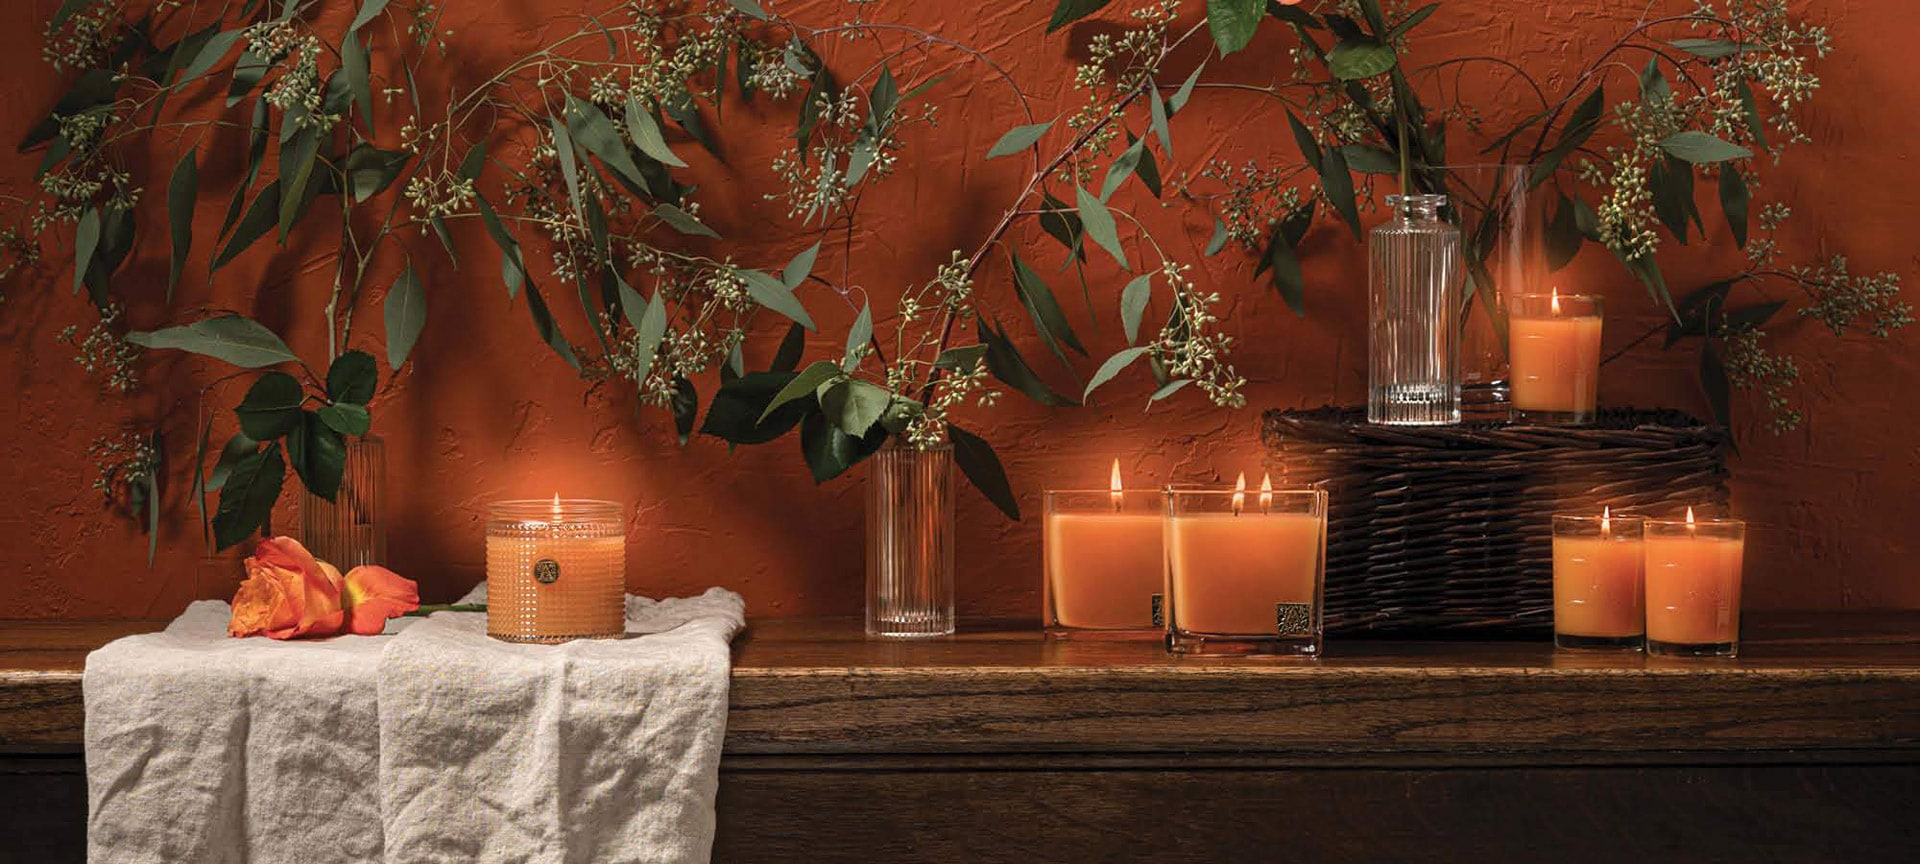 Aromatique Valencia Orange-Luxury Candles for your home